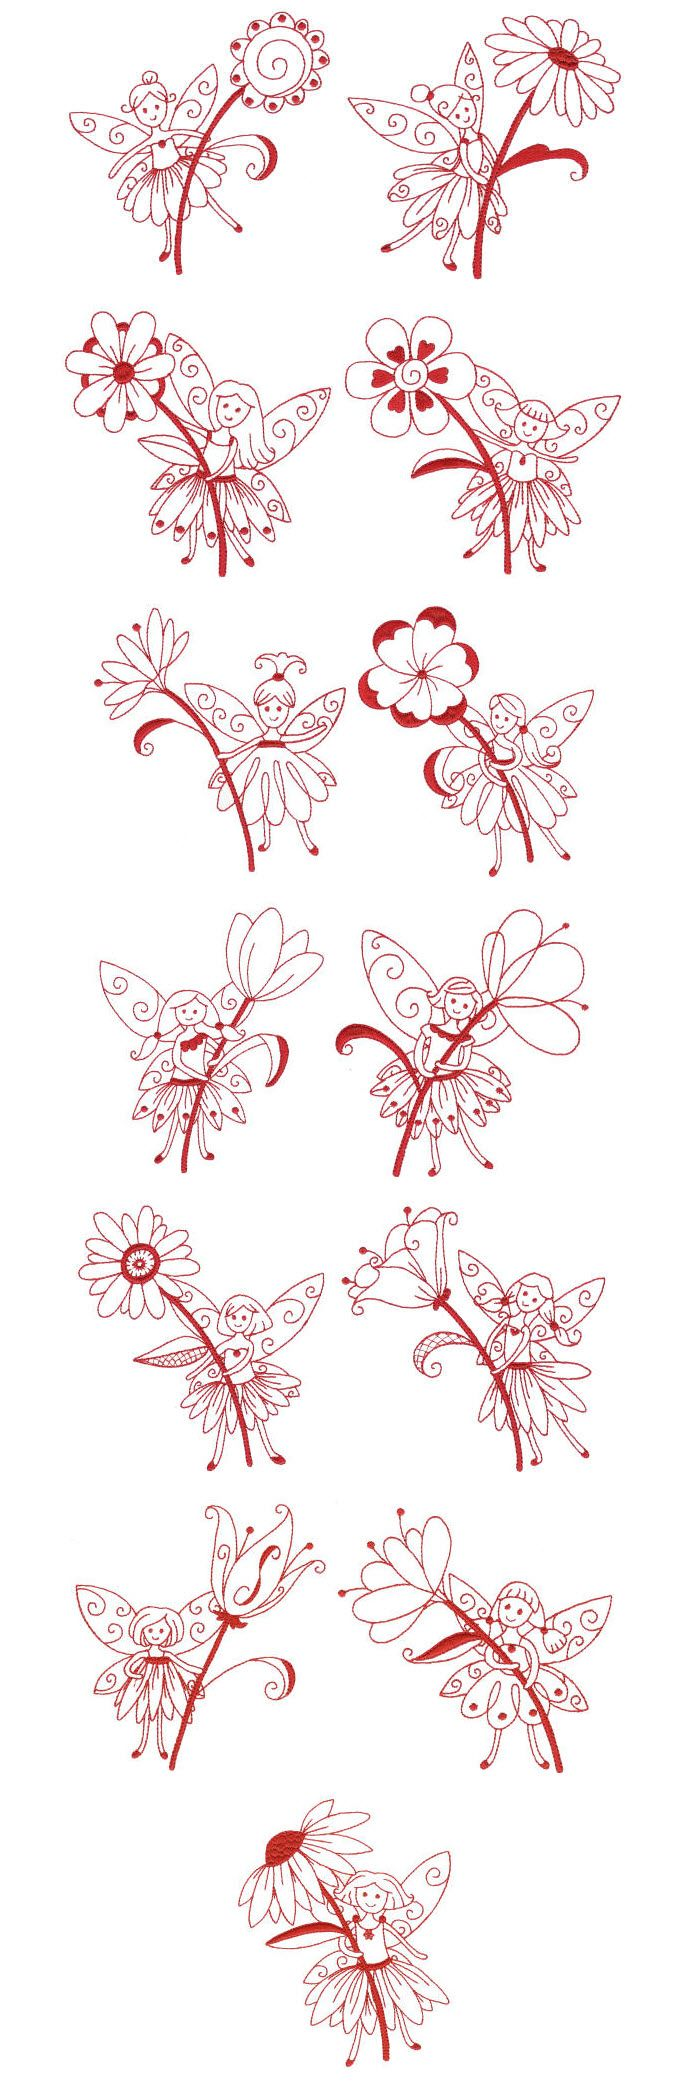 Embroidery | Free Machine Embroidery Designs | Fanciful Fairies Redwork